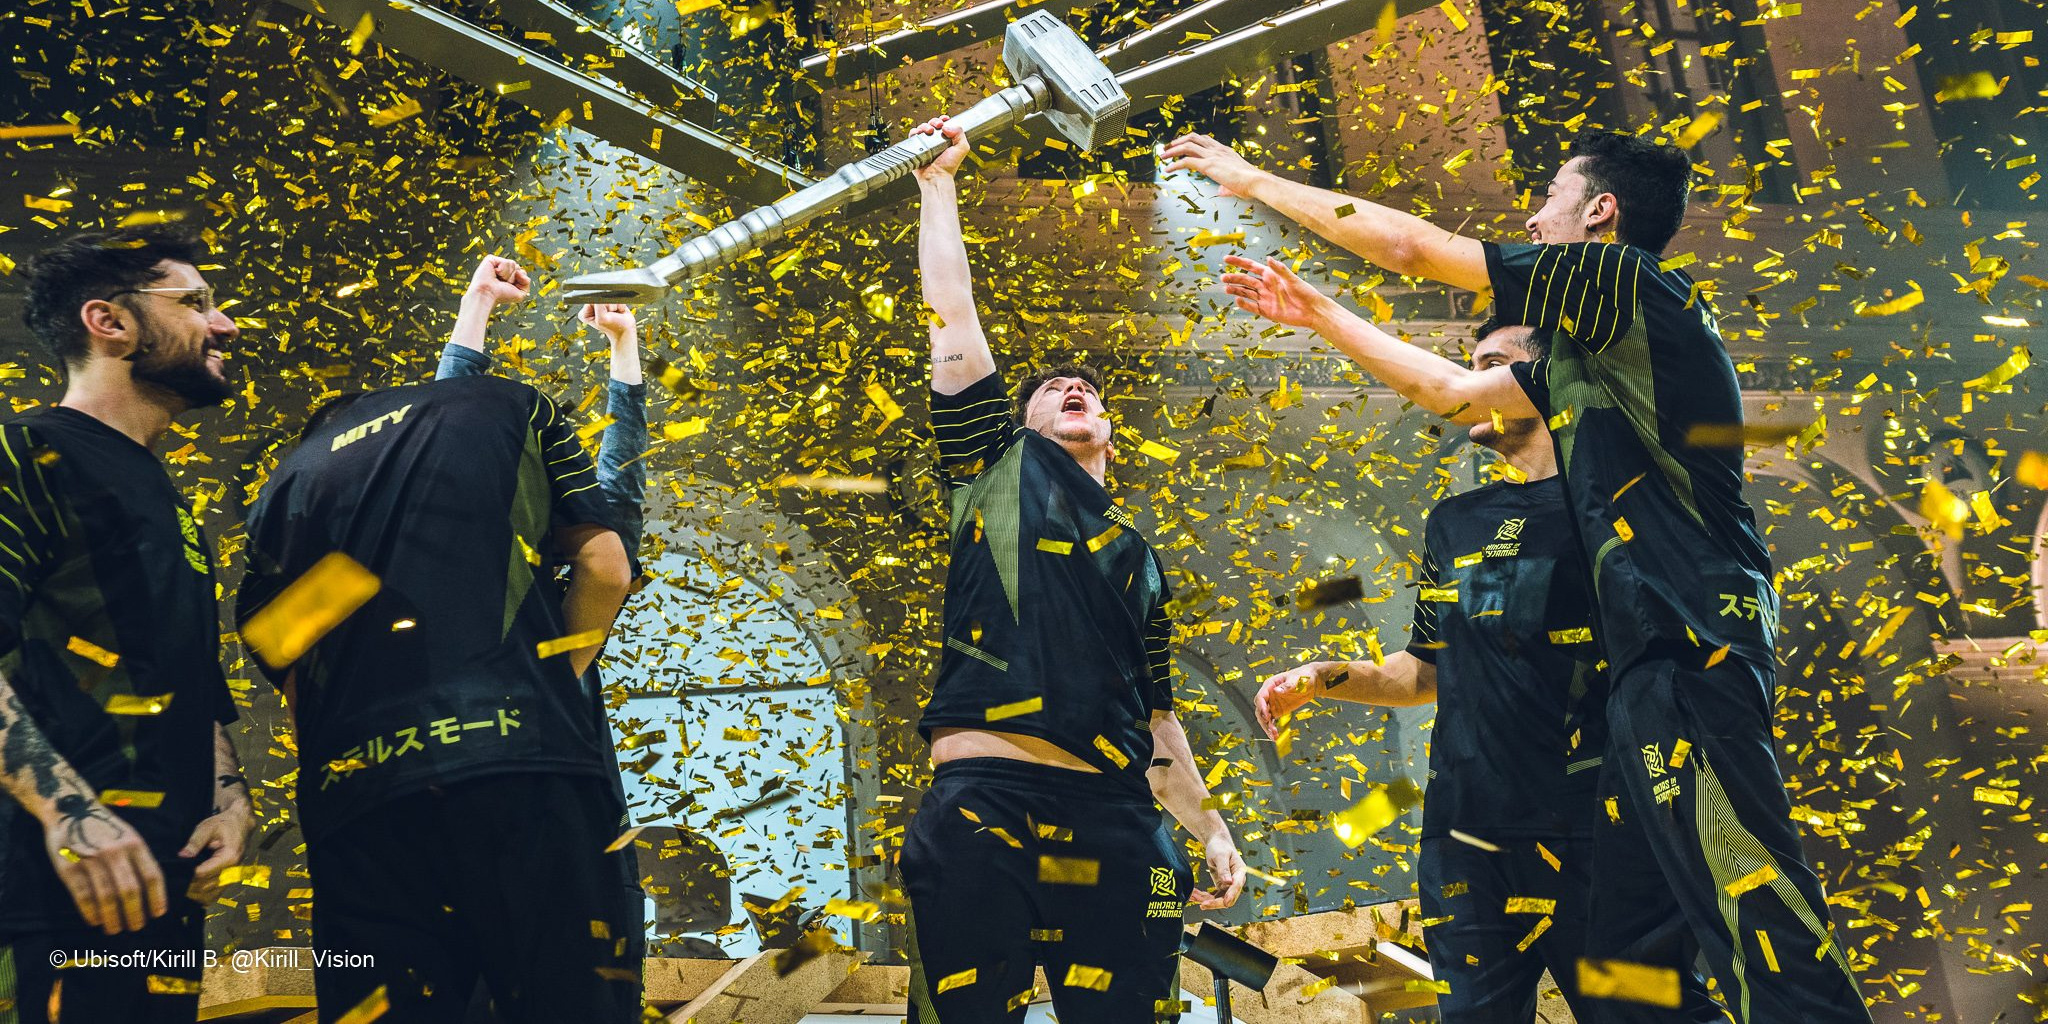 LATAM Stage 2: NiP Lifted the Hammer, Now Can They Win the Brasileirão?